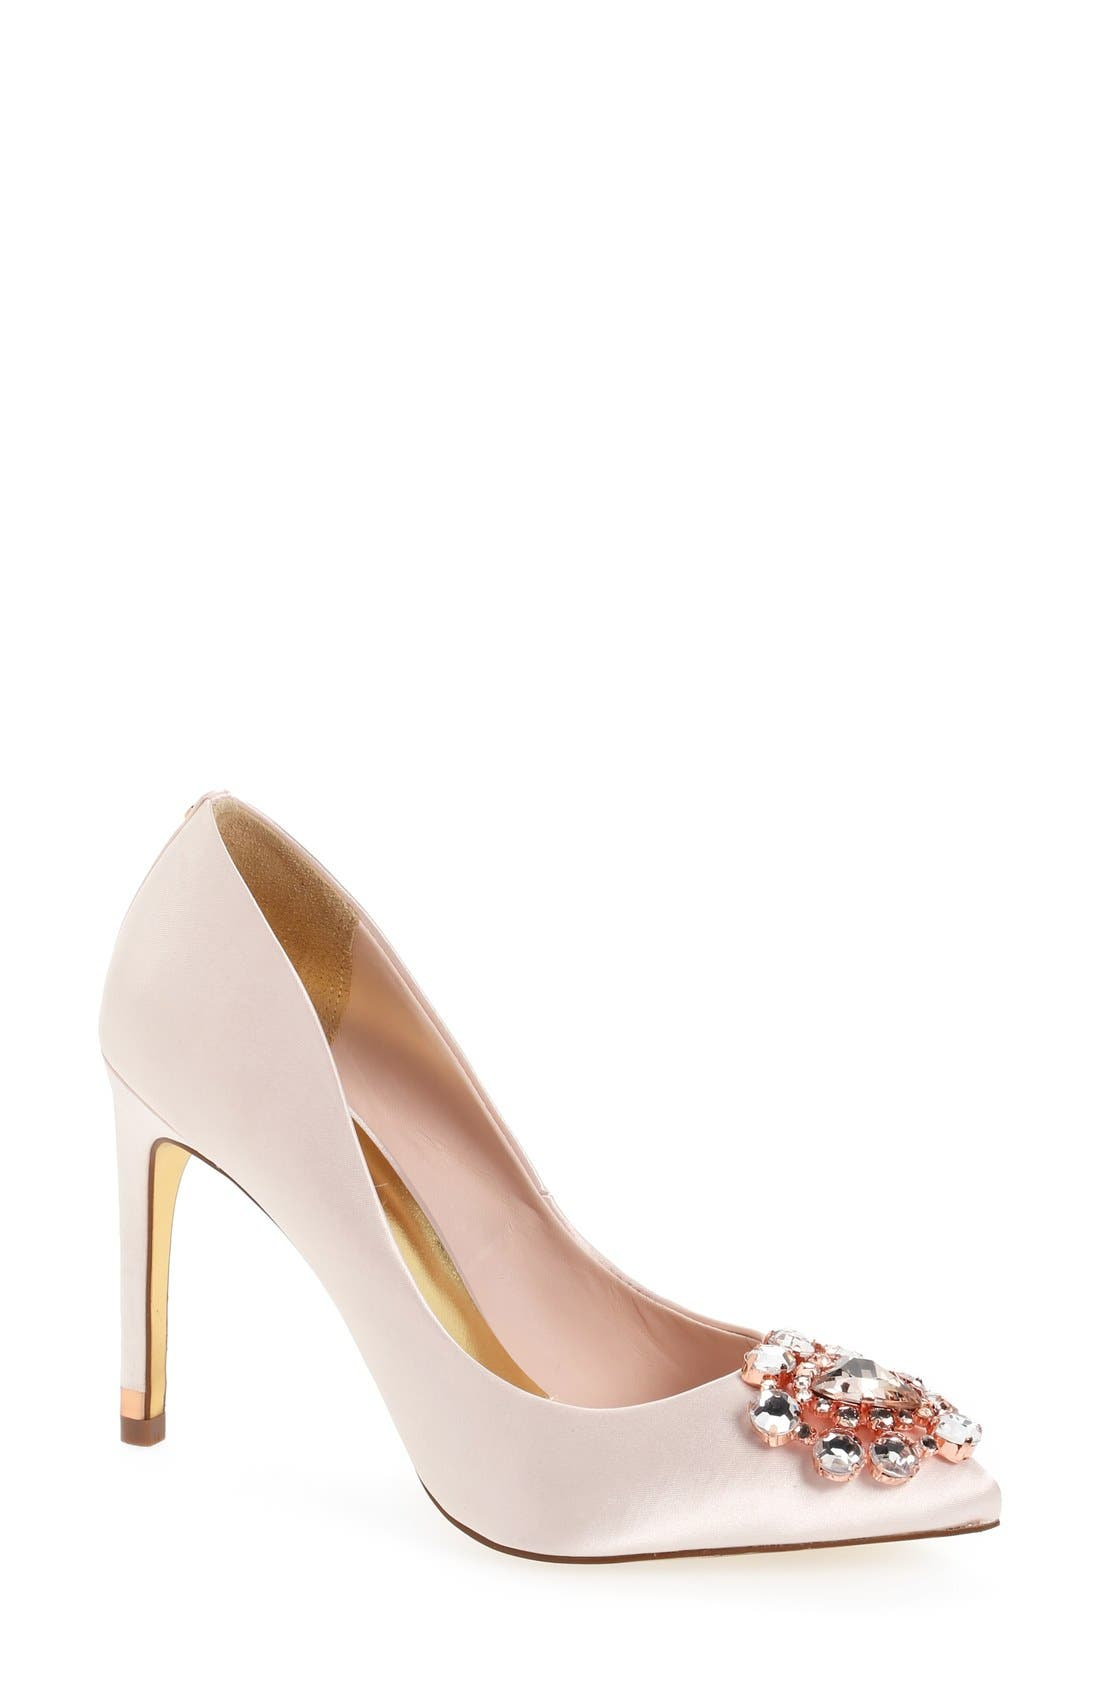 Alternate Image 1 Selected - Ted Baker London 'Torela' Pump